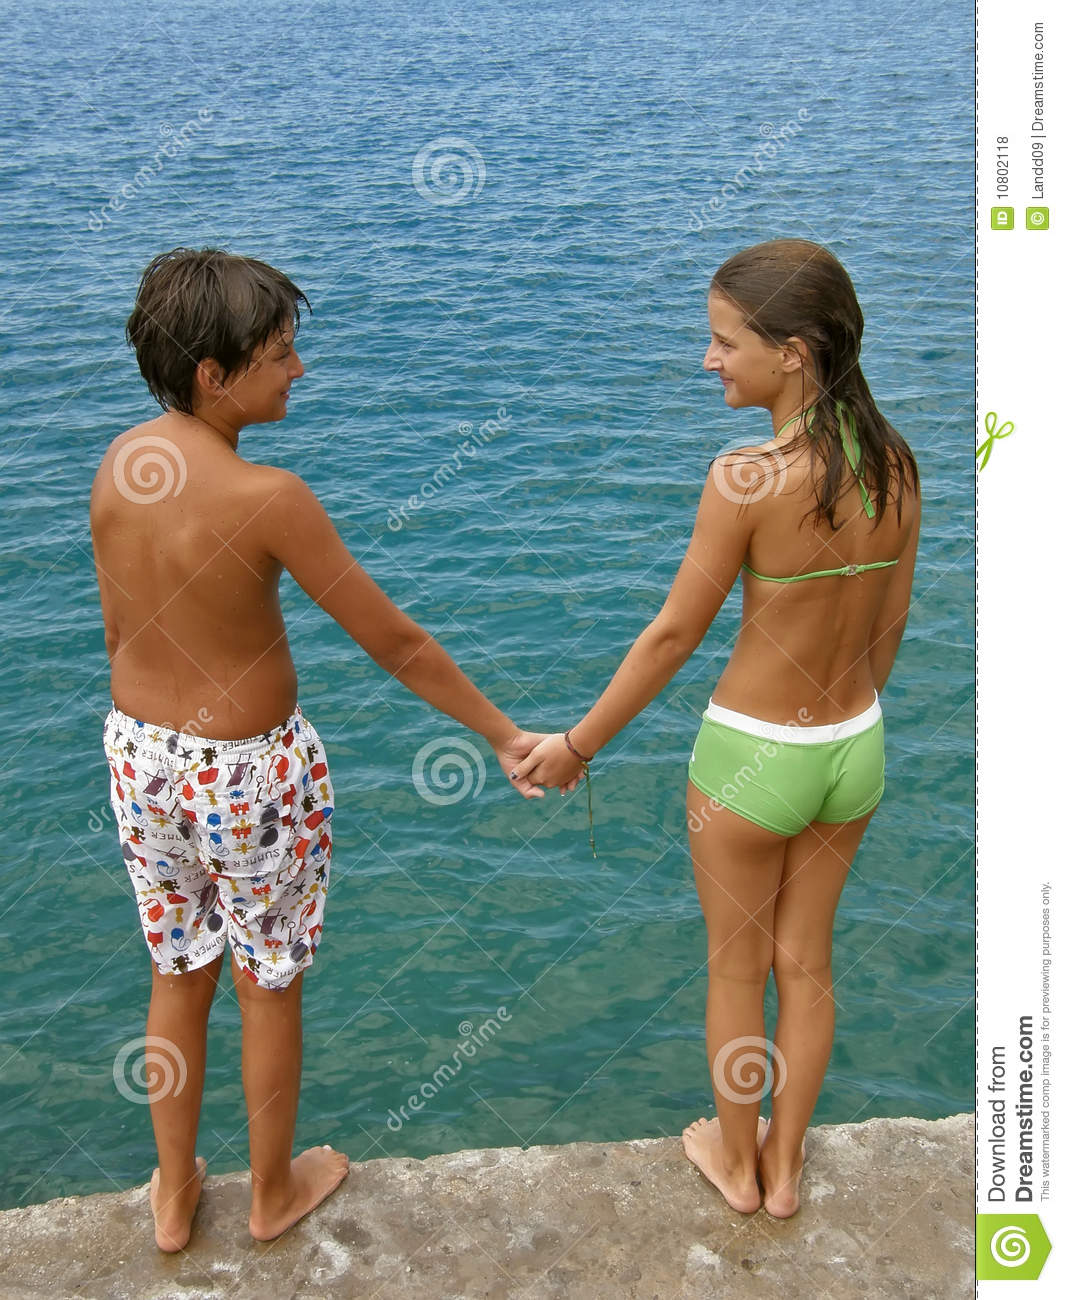 teenagers boy and girl hold hands lovingly looking facing each